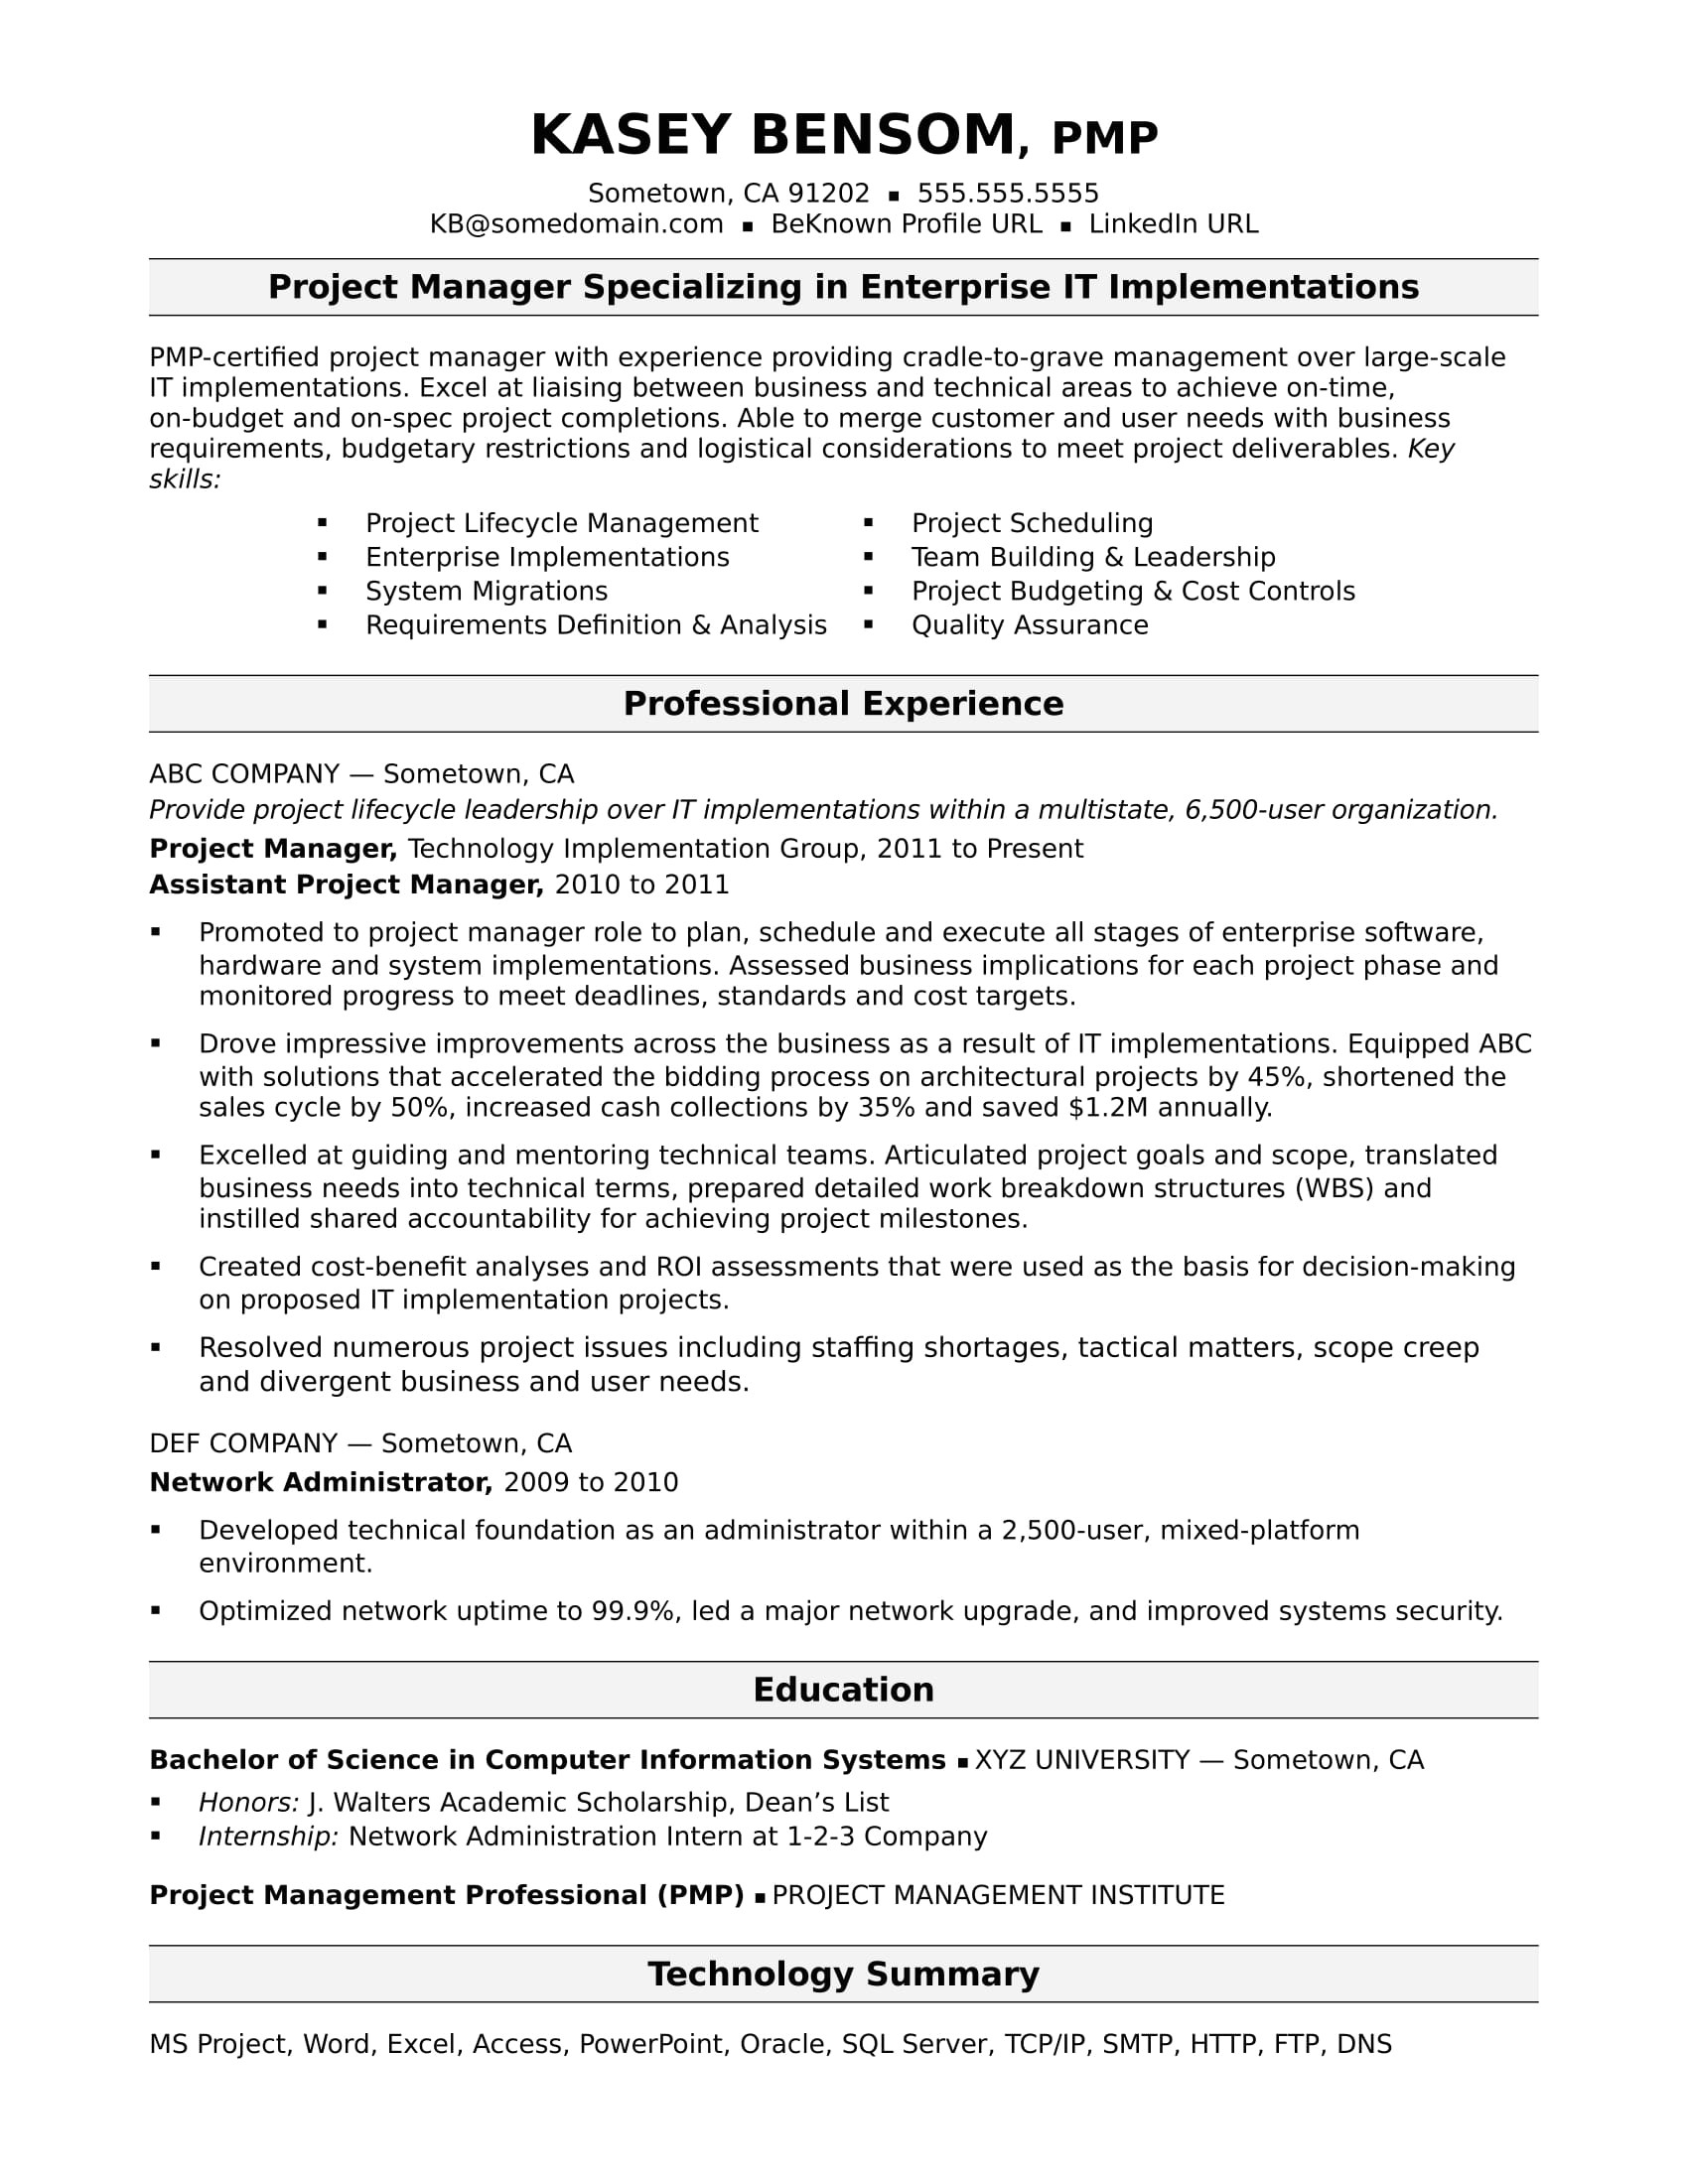 Sample Project List for Resume Sample Resume for A Midlevel It Project Manager Monster Com